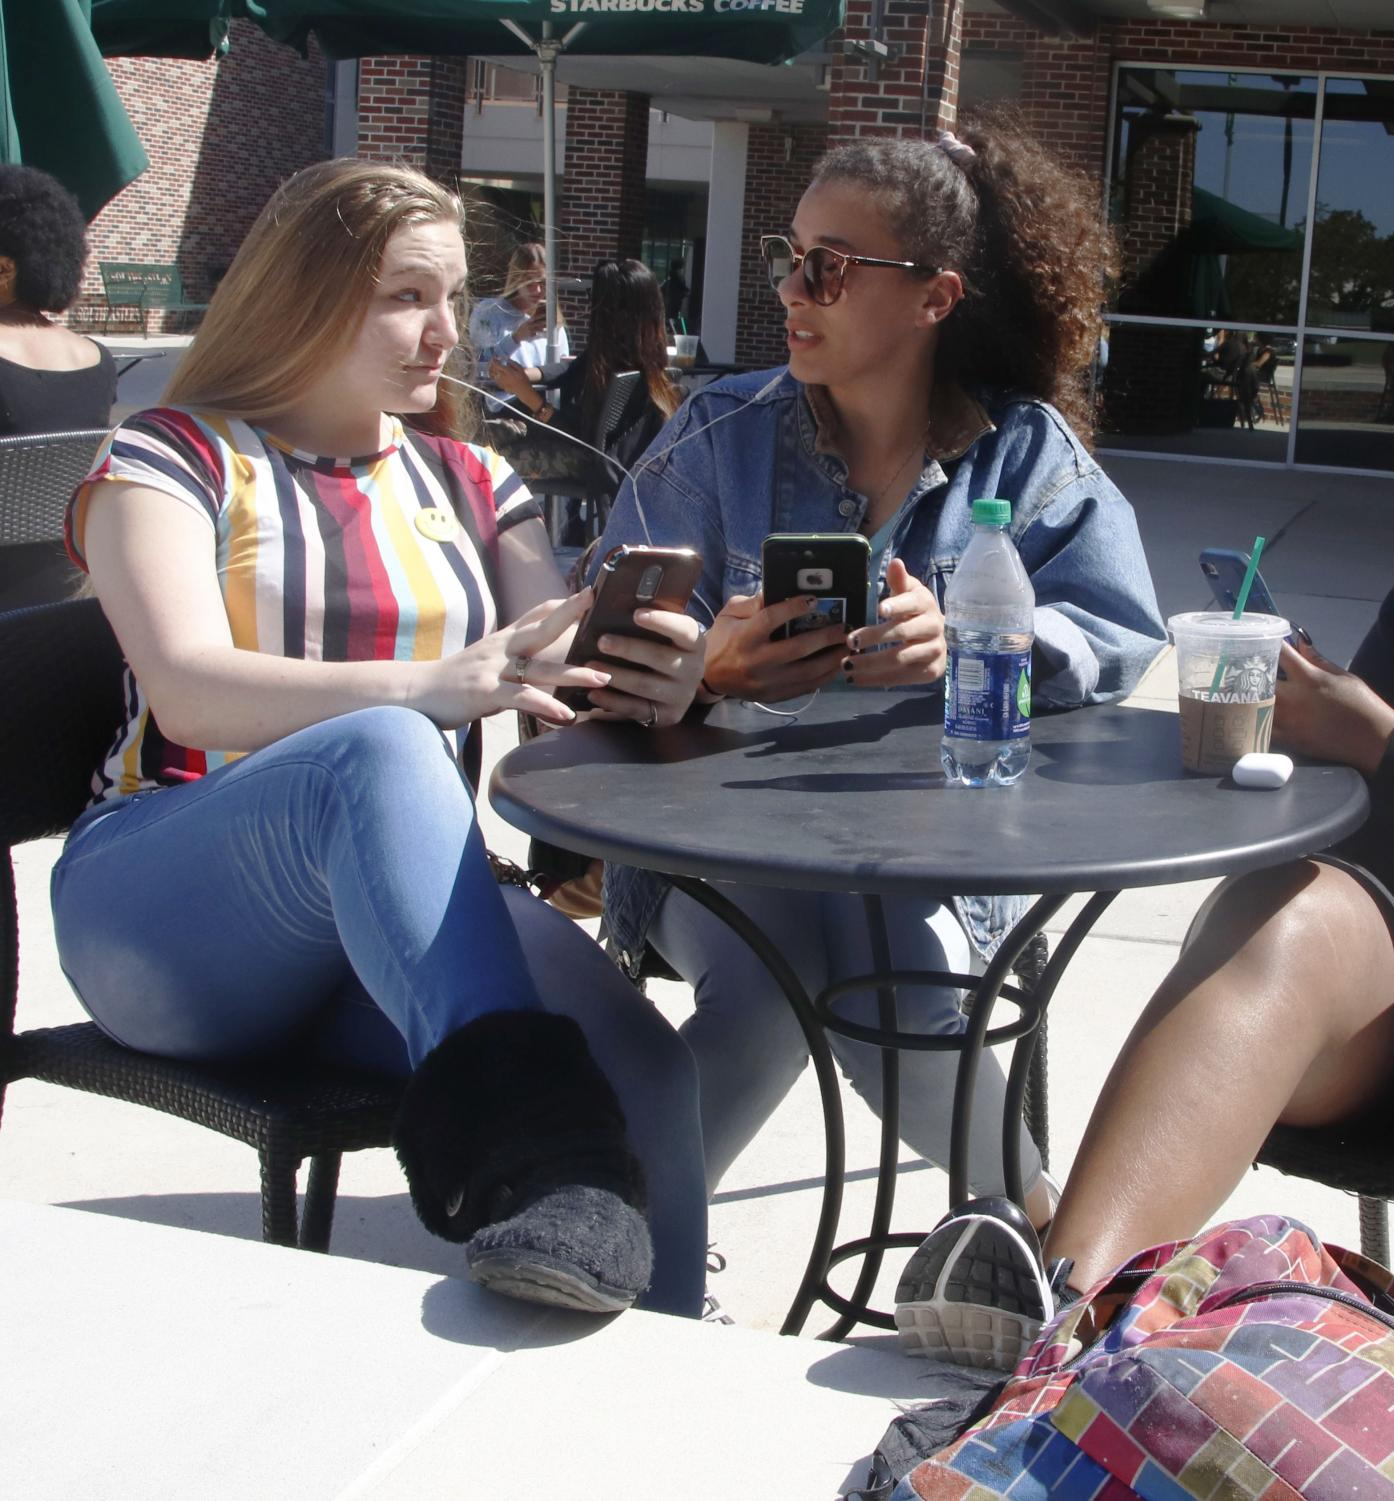 Students share headphones to listen to music. Music is a common study device used by students, but opinions on which music works best differs between people. Research has shown positive outcomes for listening to music while studying.